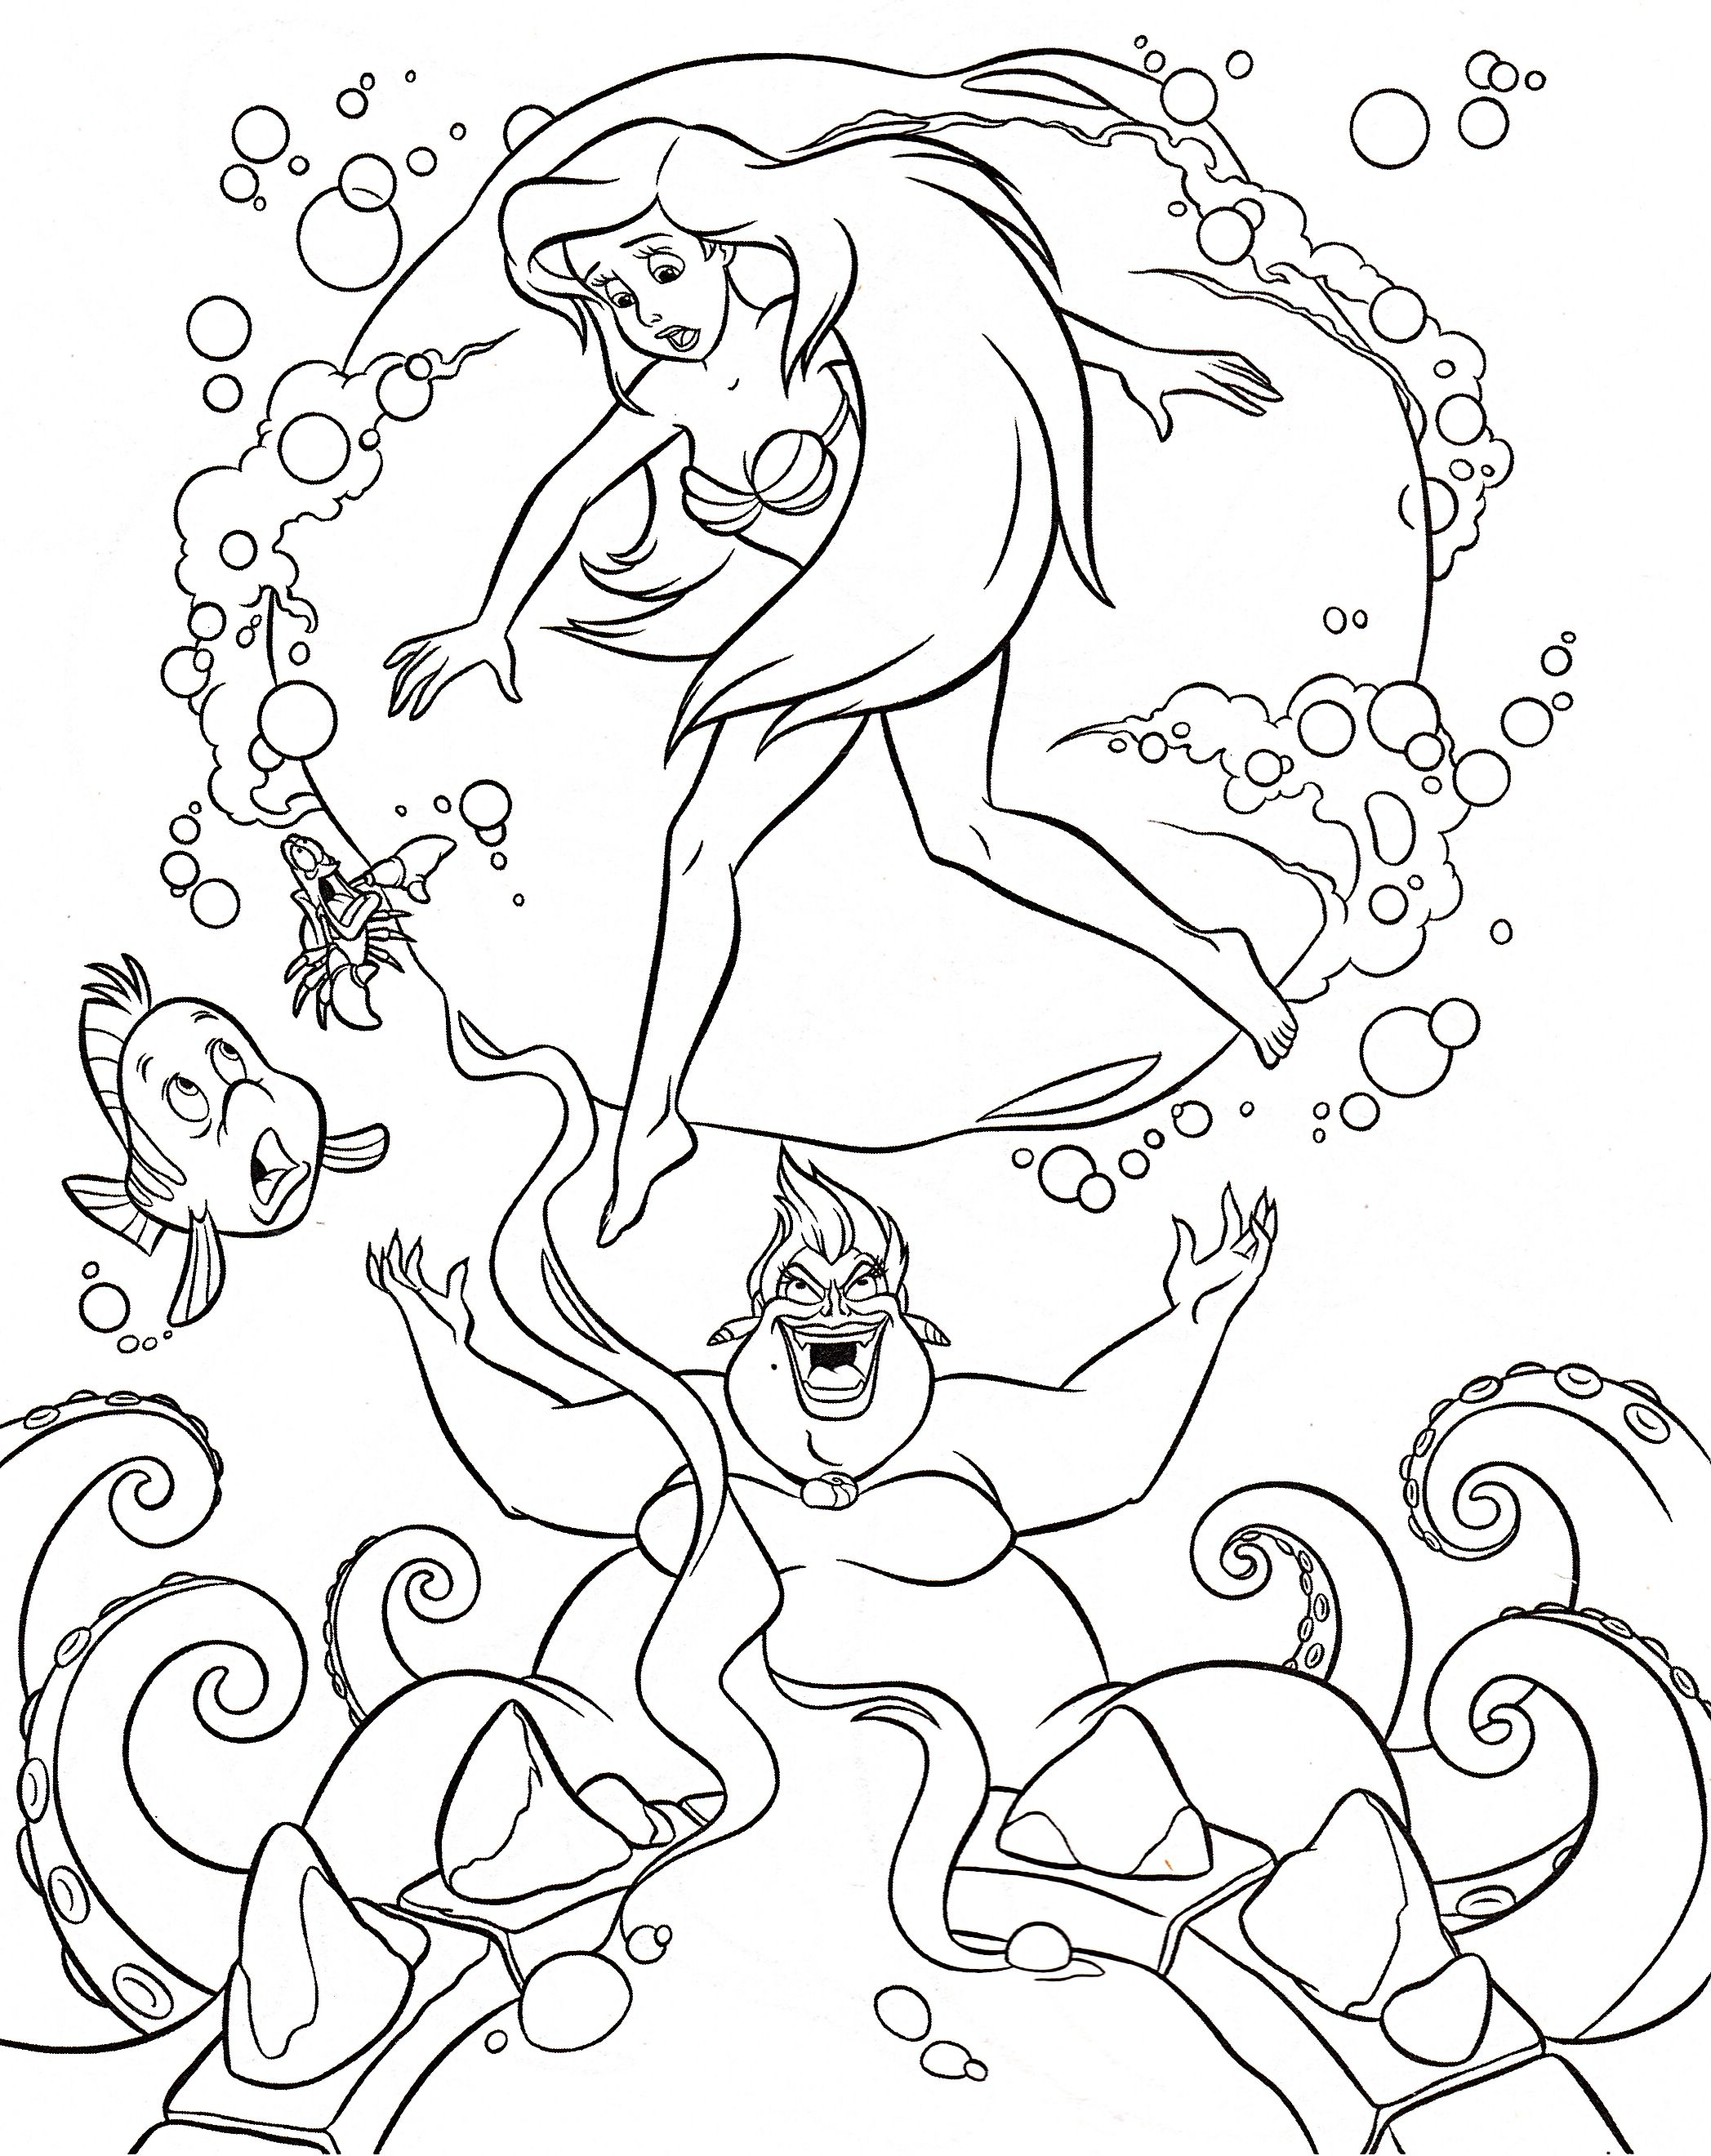 Walt Disney Coloring Pages Flounder, Sebastian, Princess